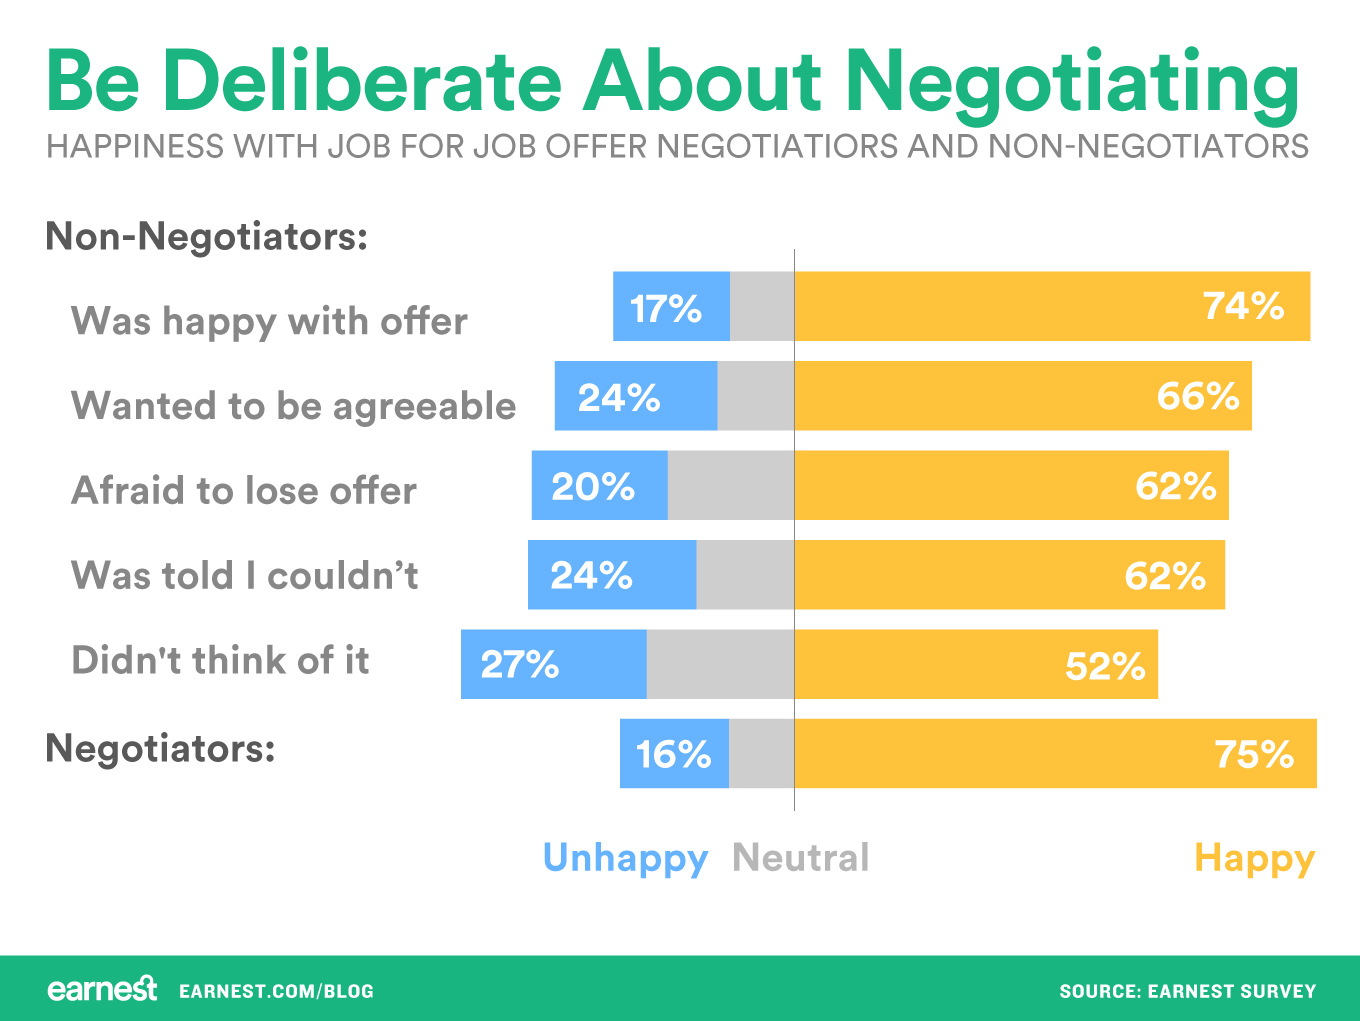 Be deliberate about negotiating